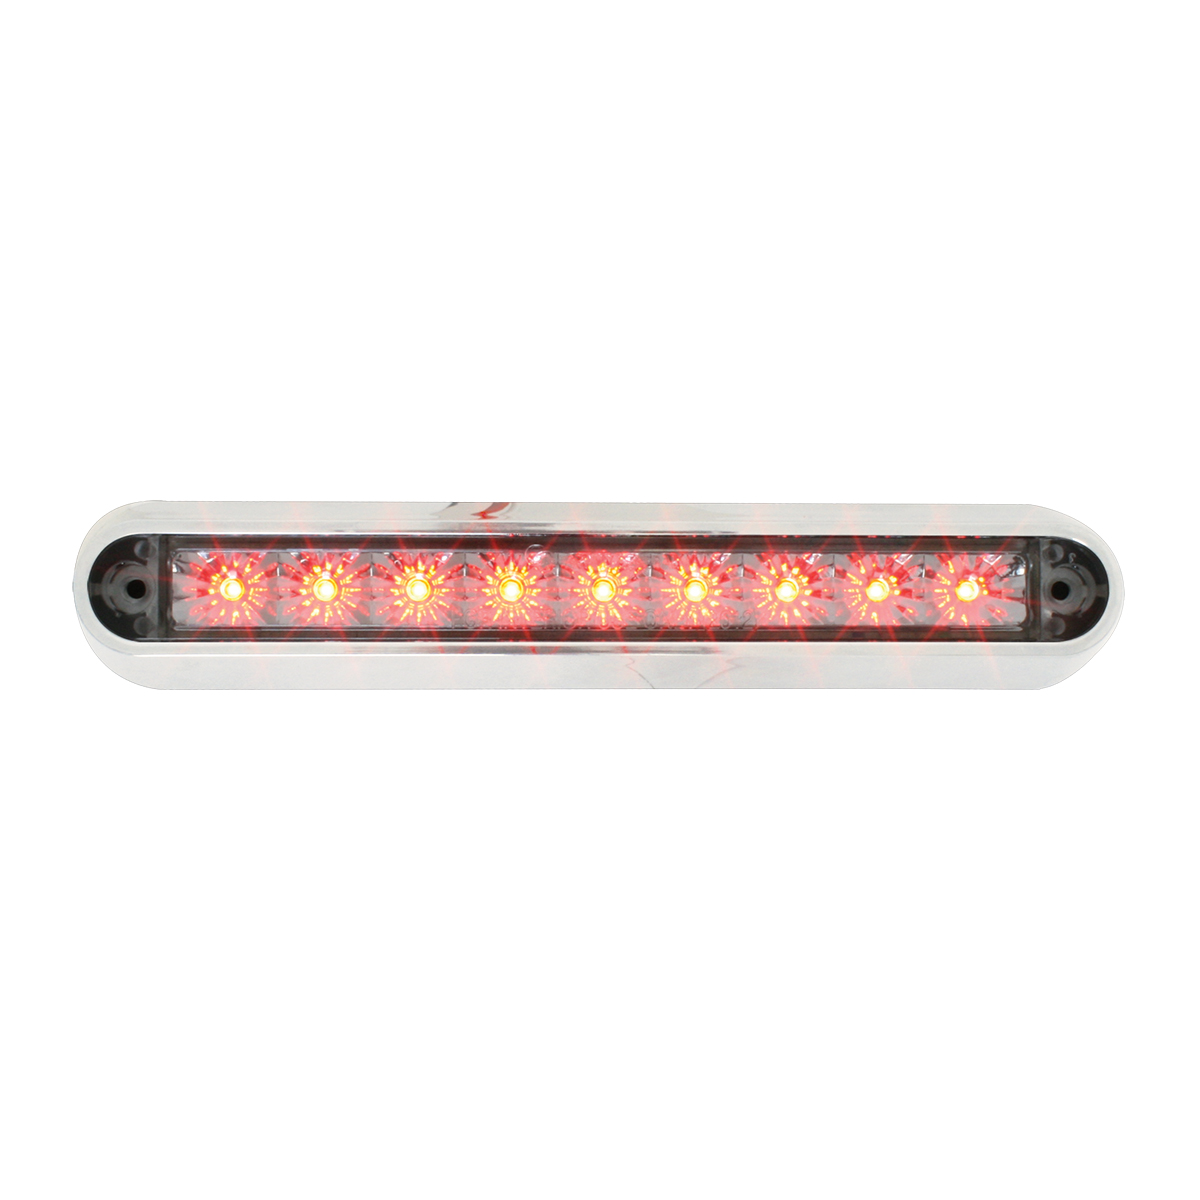 "76093 6.5"" Surface Mount LED Light Bar w/ Chrome Plastic Base"